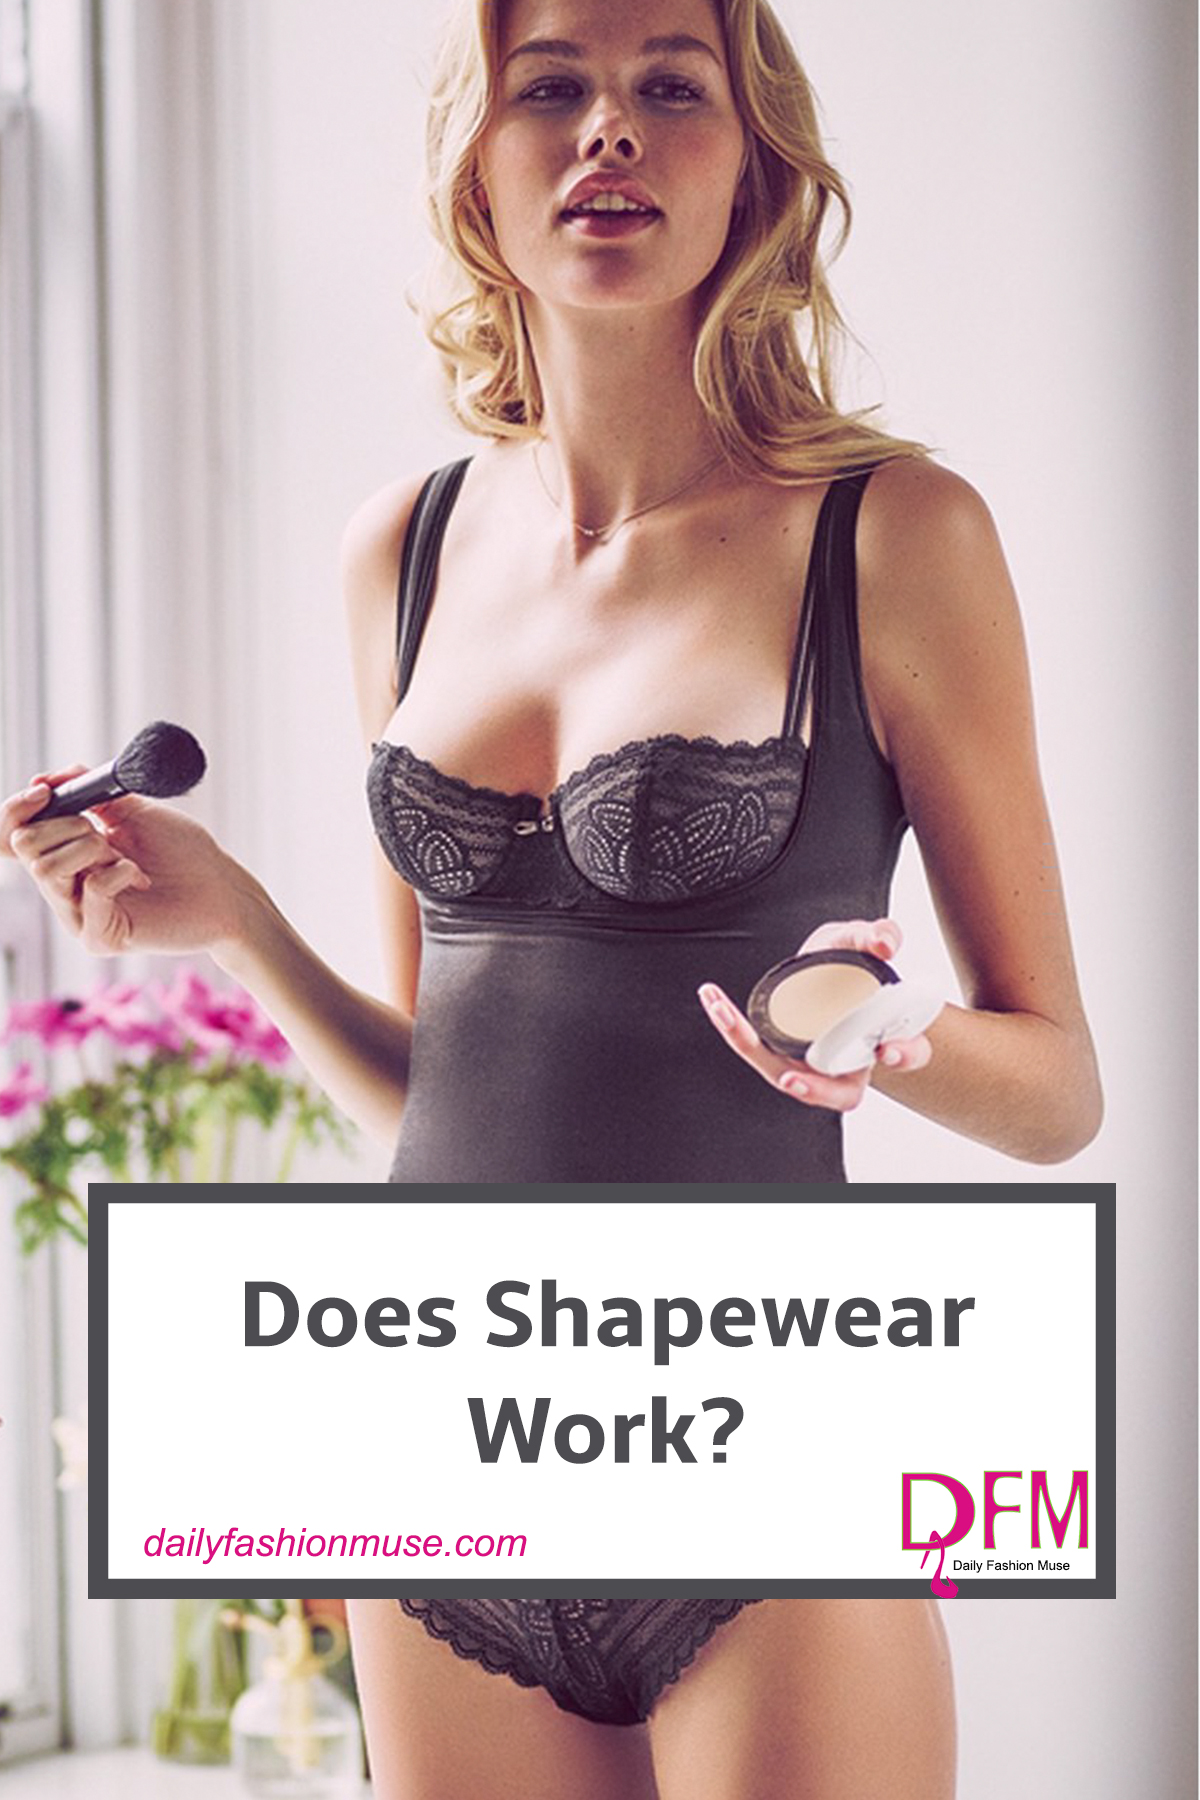 Does shapewear work? In one resounding word YES!!!!! Click through to read about how shapewear works and the positive impact it can have on your confidence.